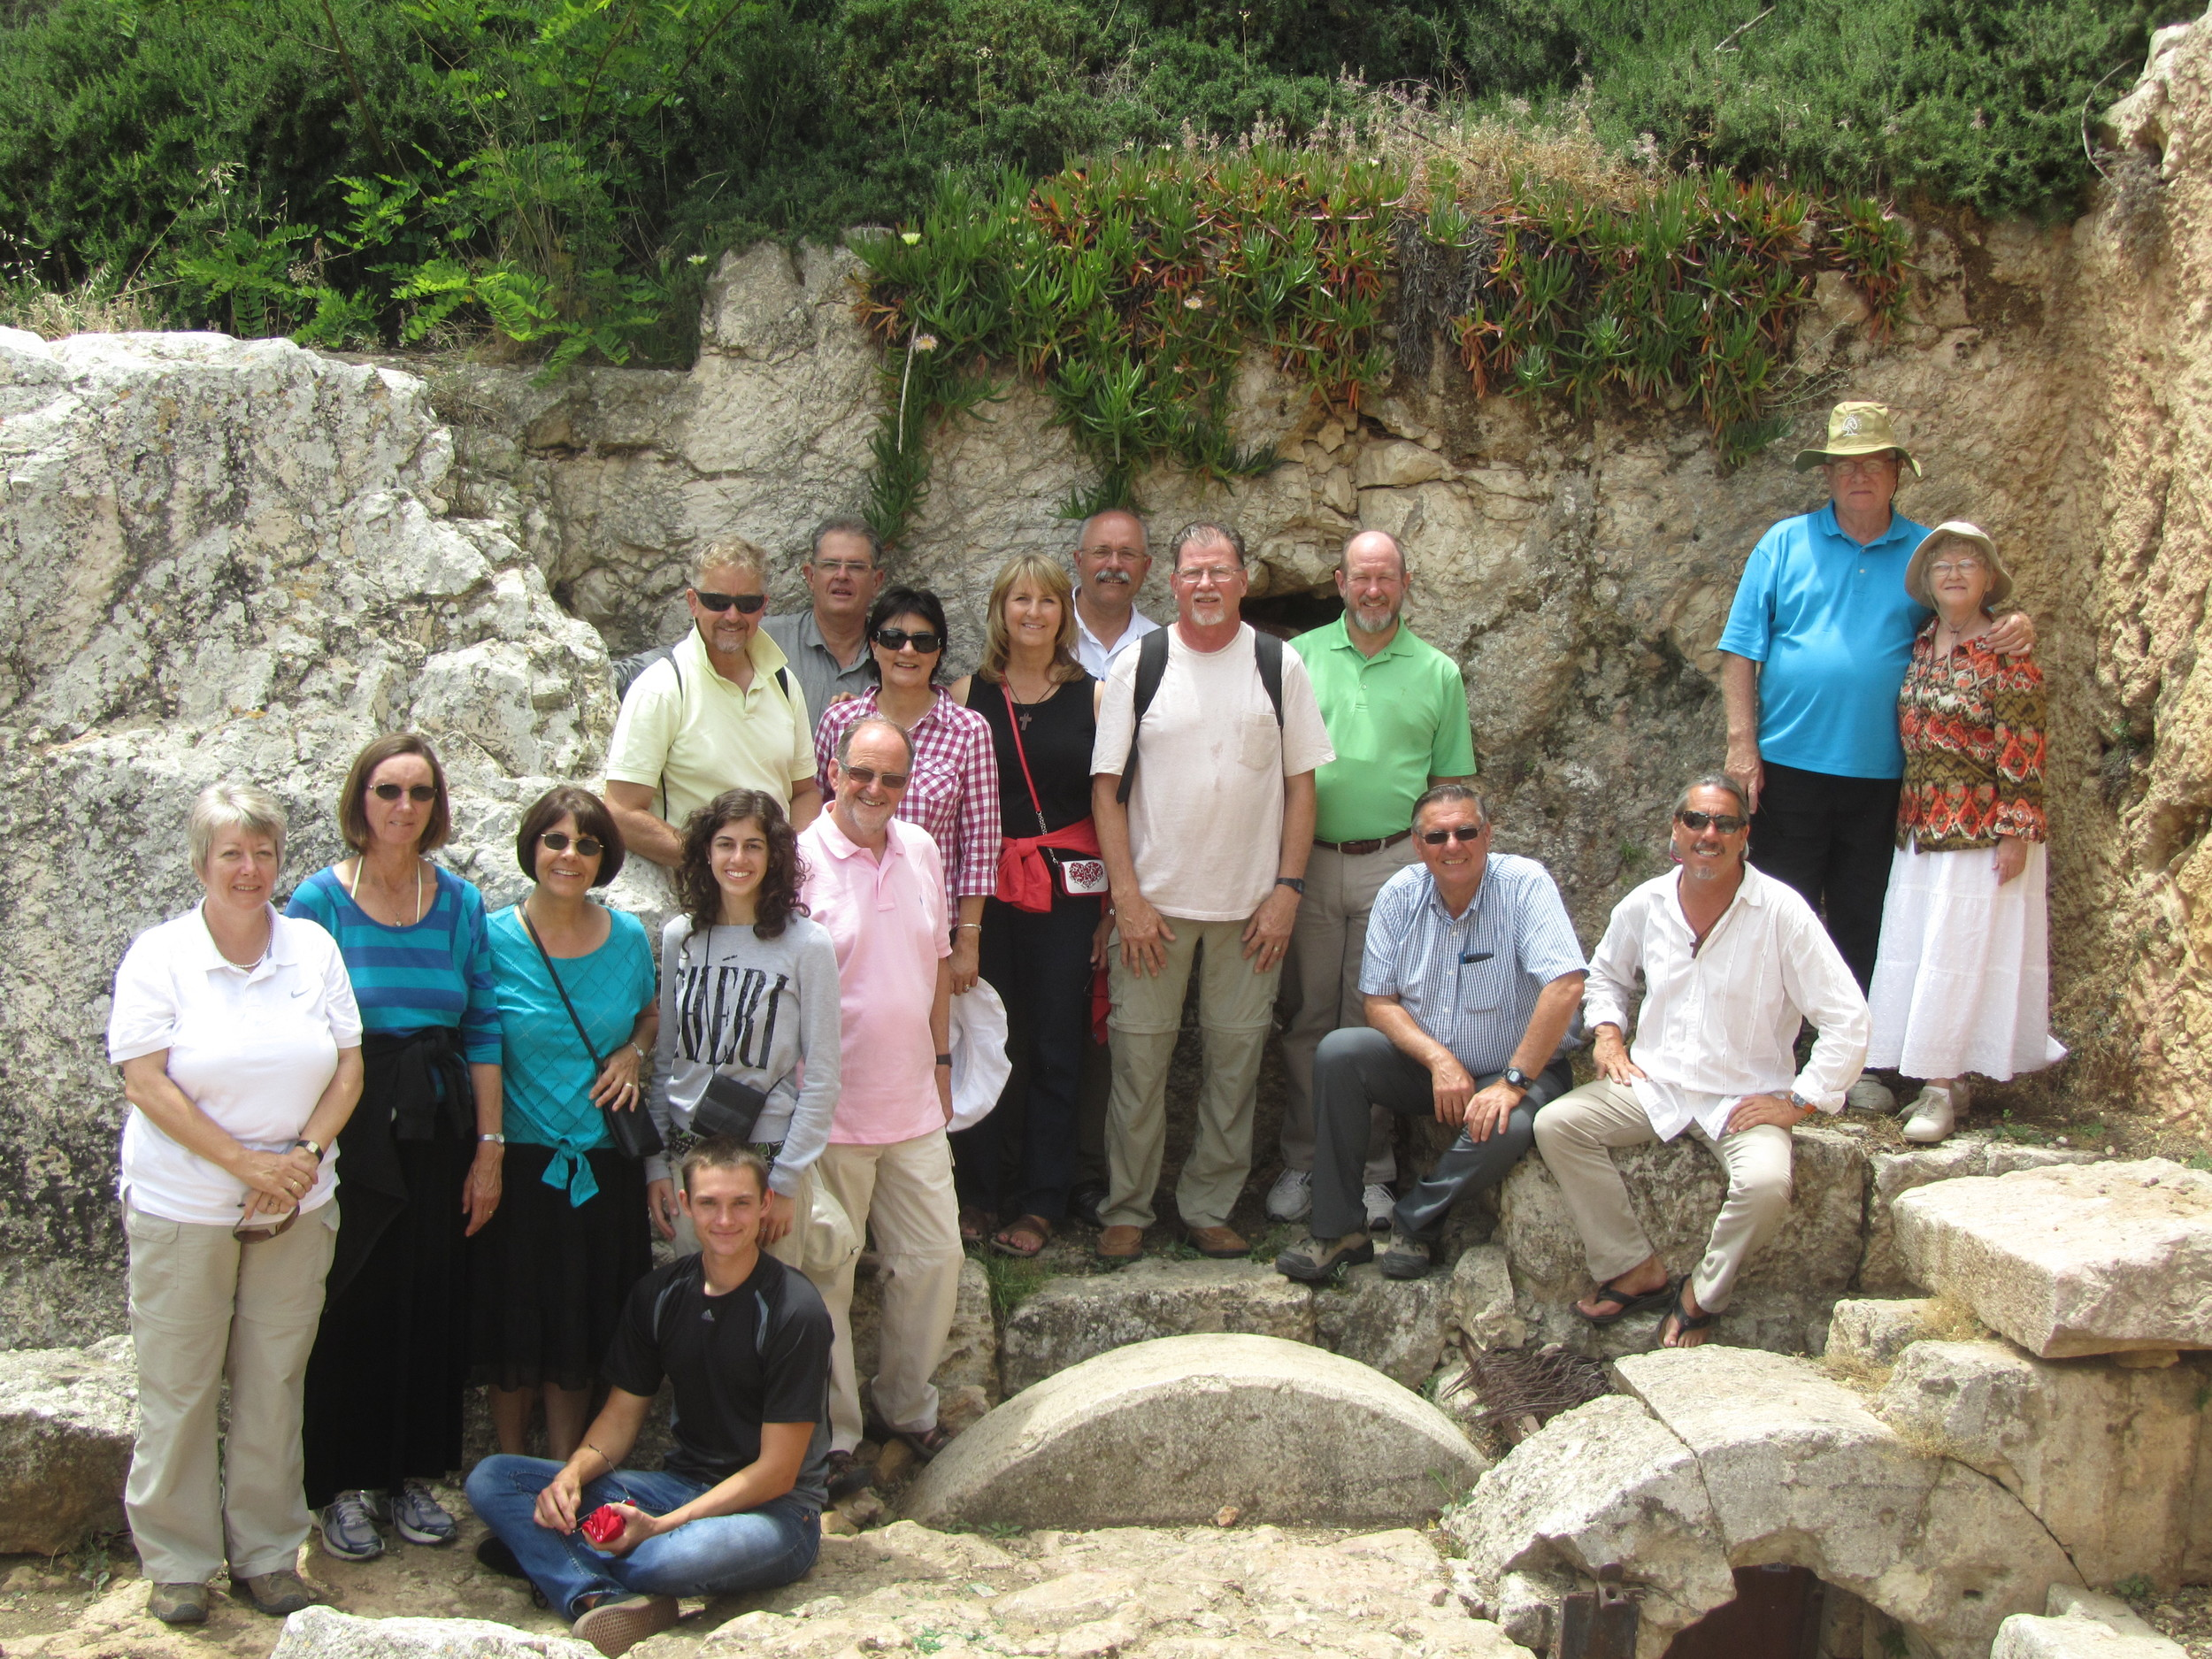 Our last group shot at the Herodian Family Tomb (with rolling stone)